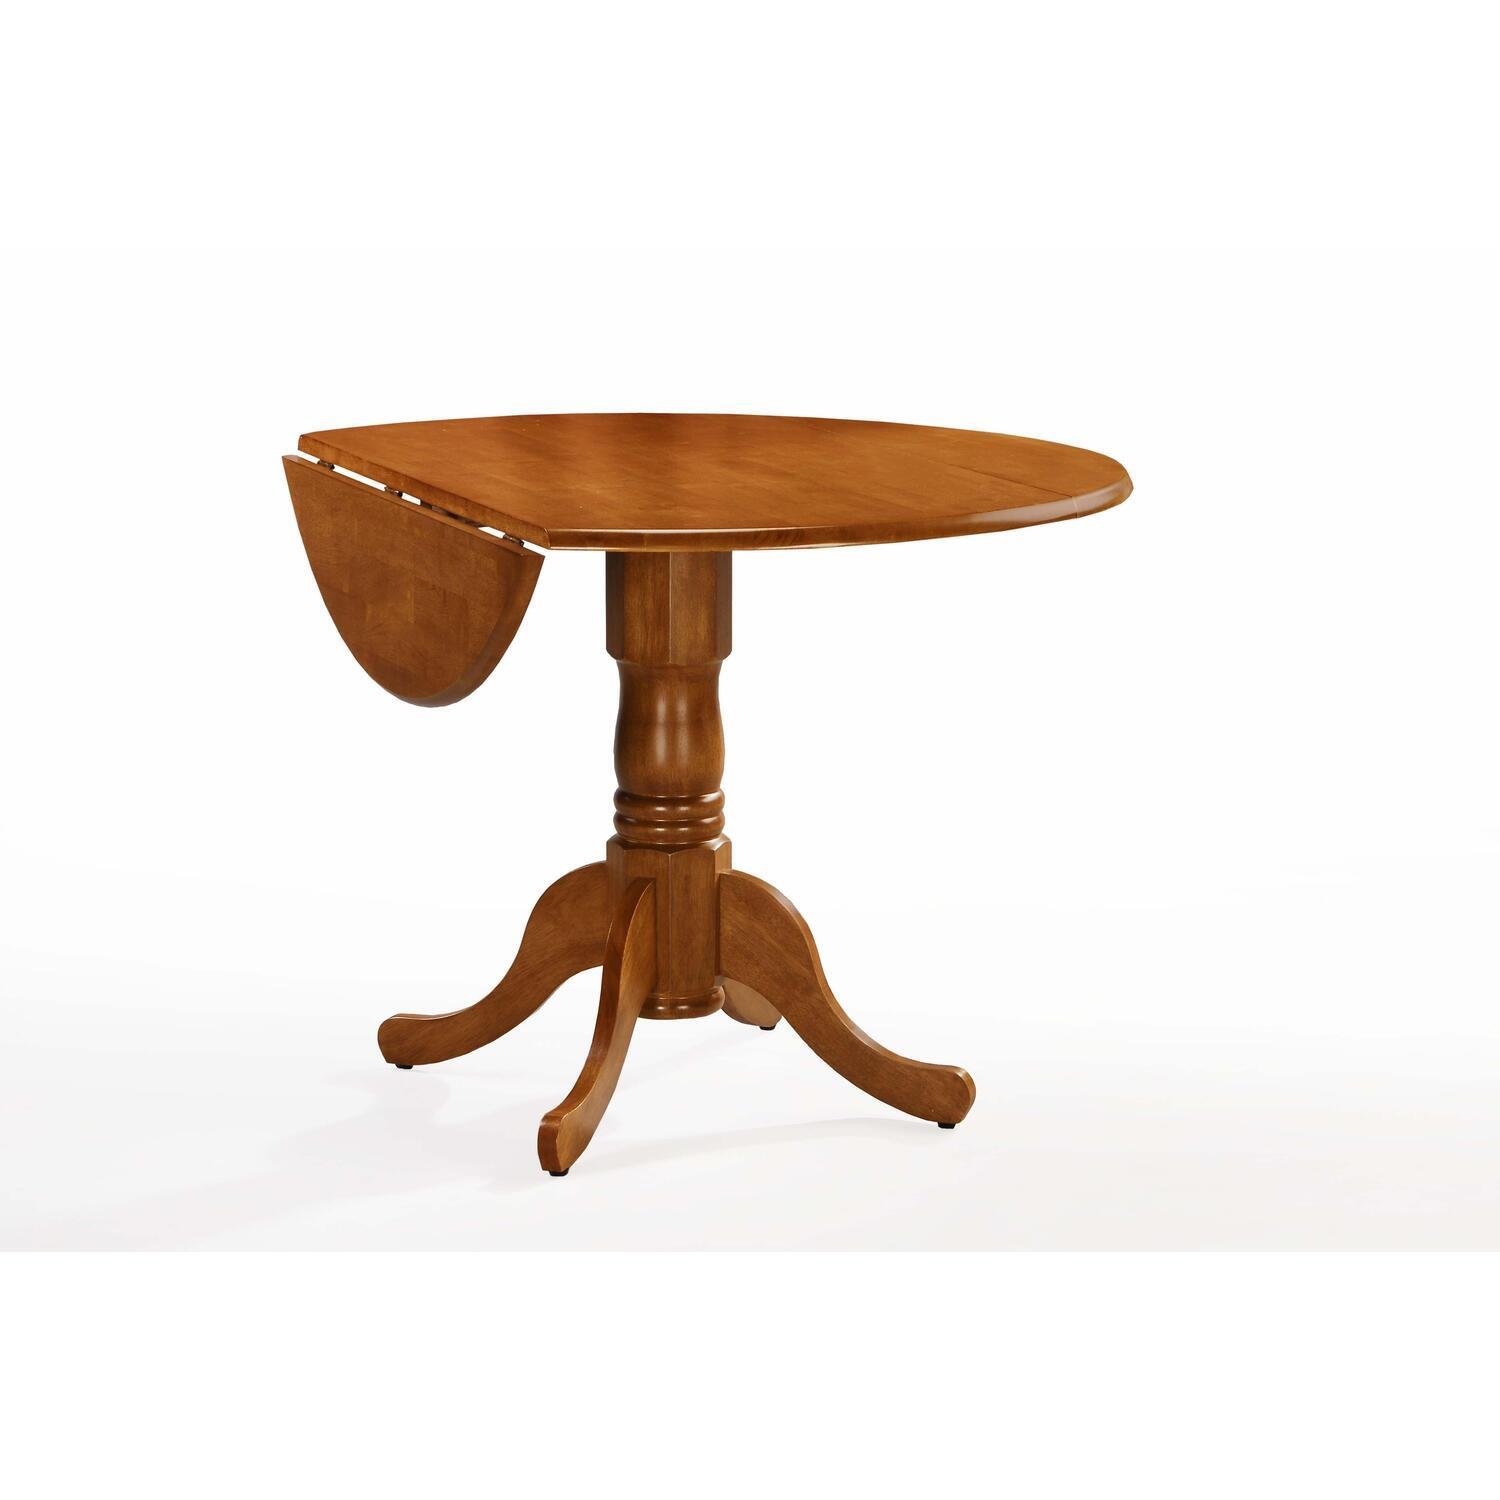 Furniture Home Goods Appliances Athletic Gear Fitness  : t0442dp42rounddualdropleafpedtable from www.ojcommerce.com size 3872 x 2592 jpeg 258kB